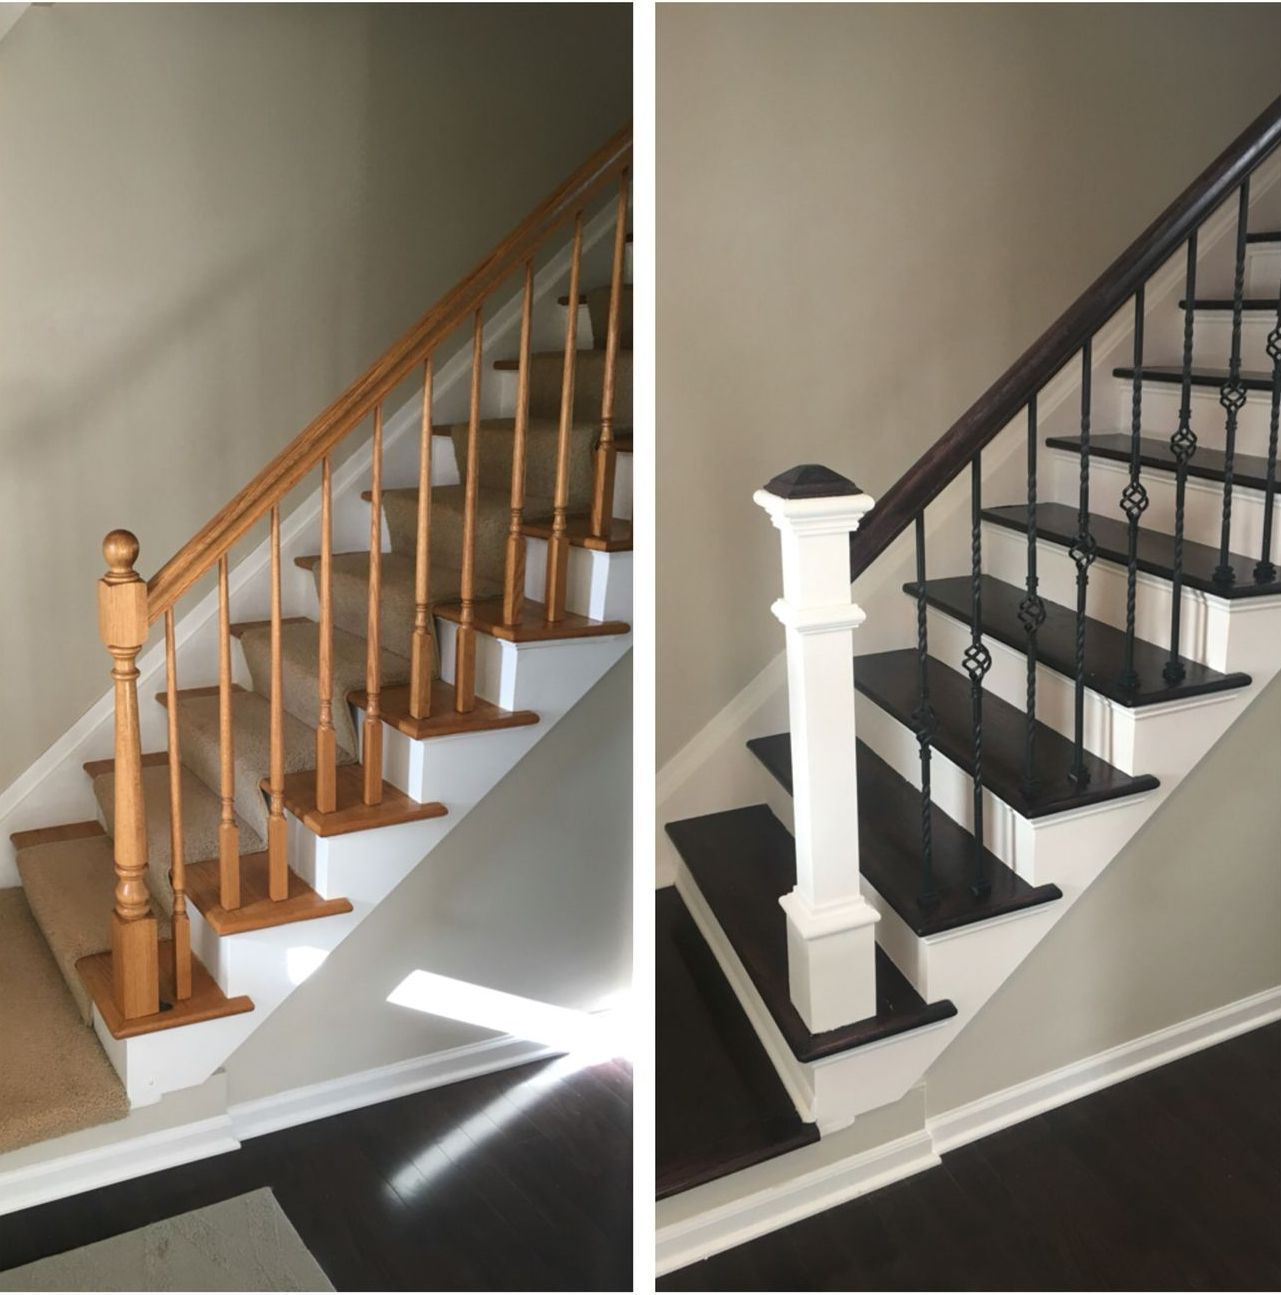 4 Diy Decorating Ideas For A Staircase: 32 Incredible DIY Staircase Makeover Ideas To Refresh The